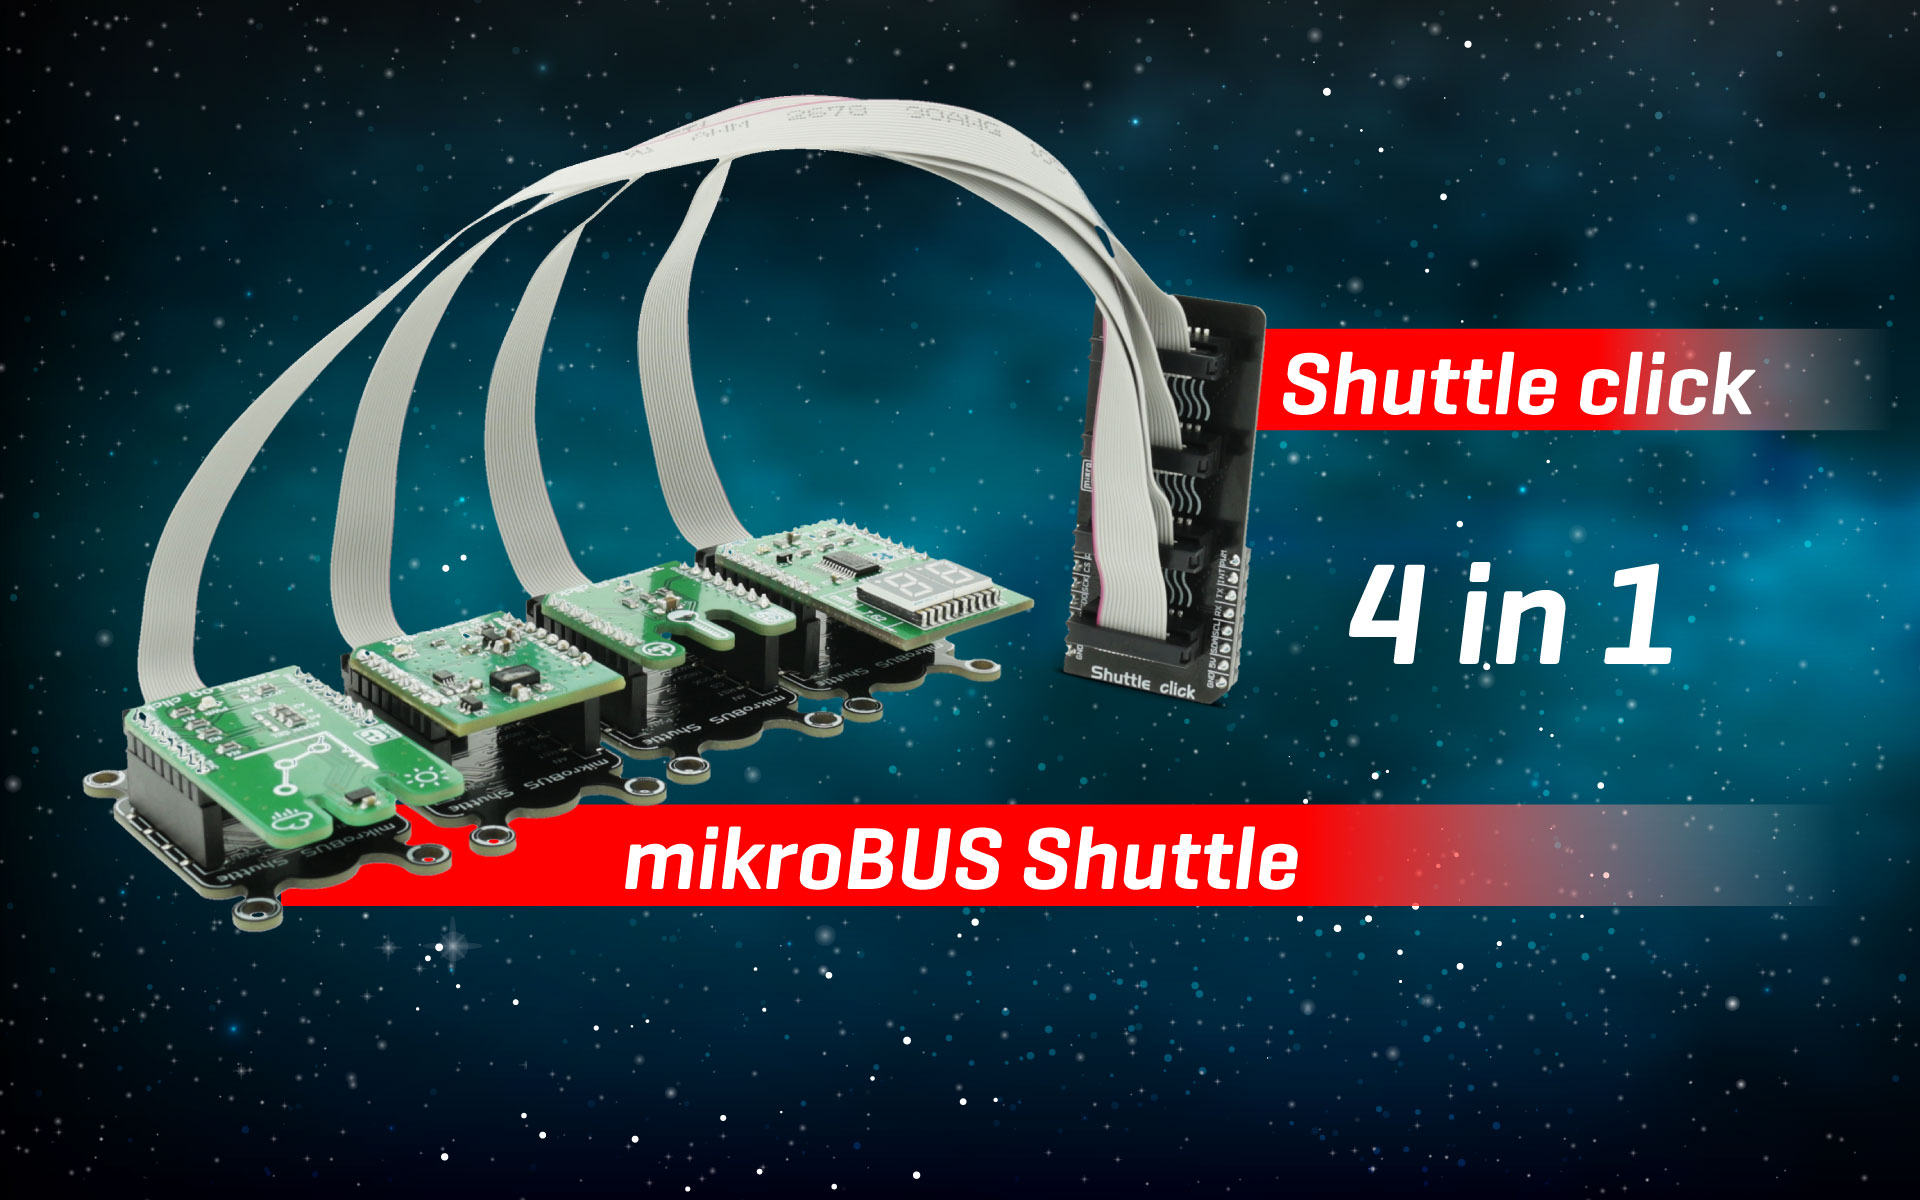 Shuttle click and mikroBUS Shuttle - Expanding connectivity with ease